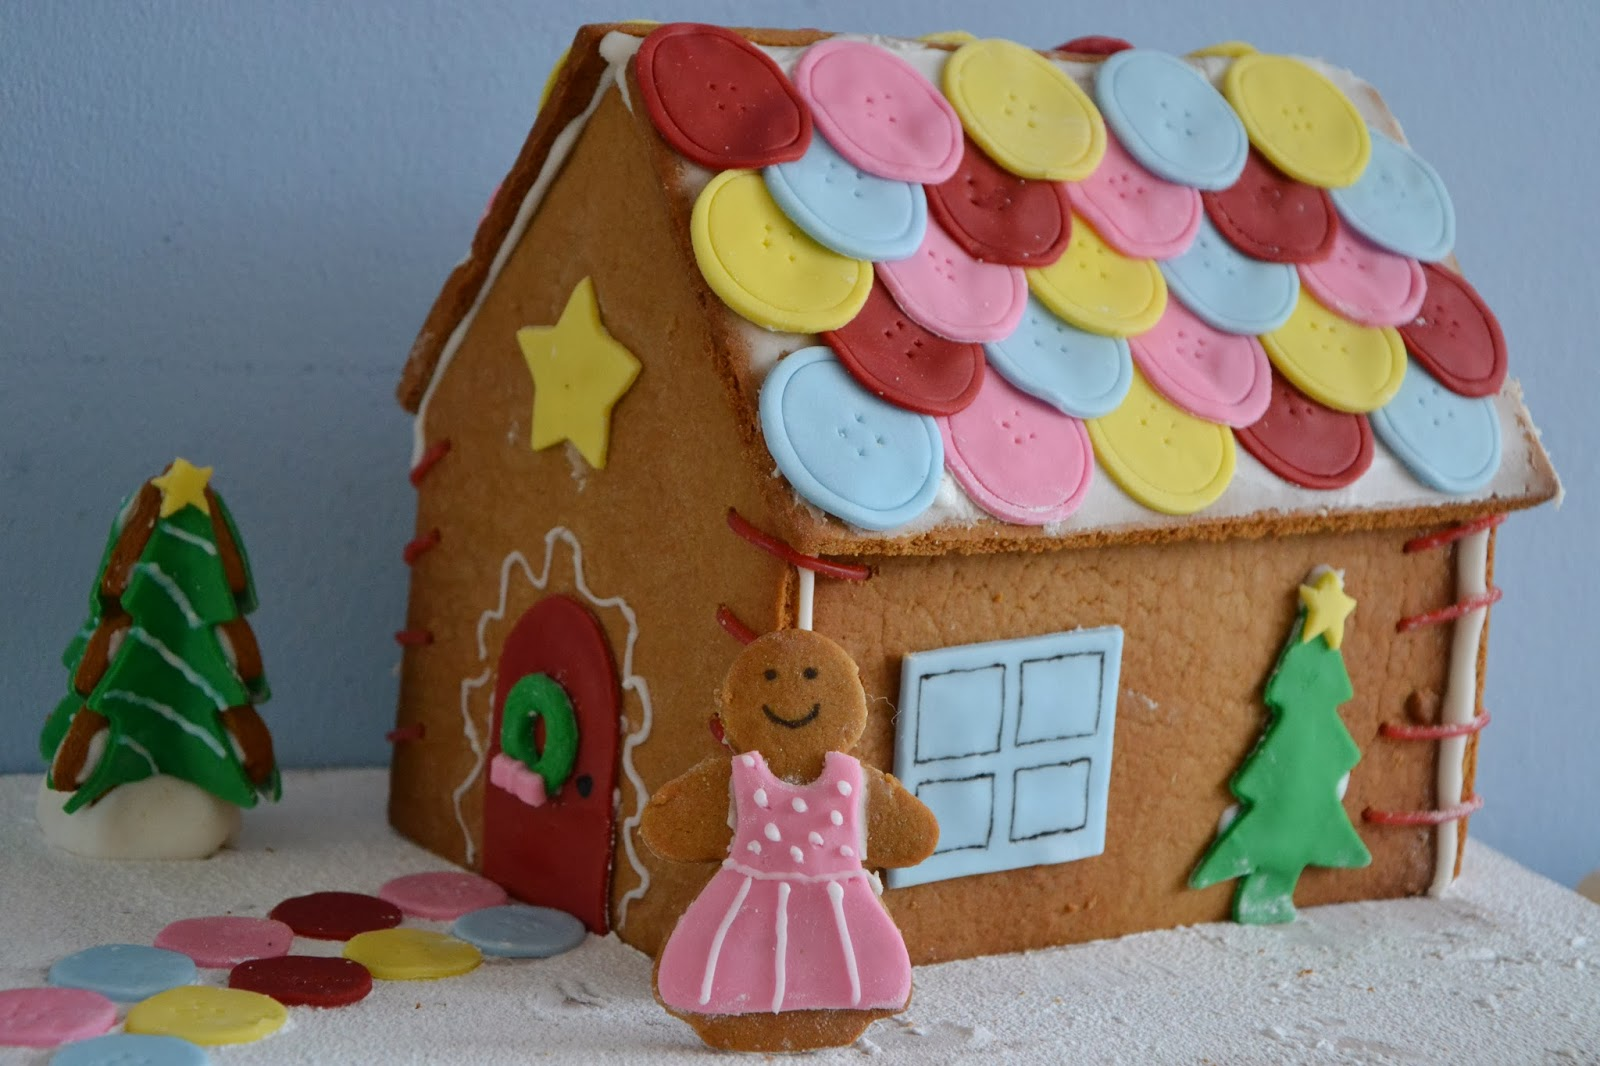 Stitched Up Gingerbread House